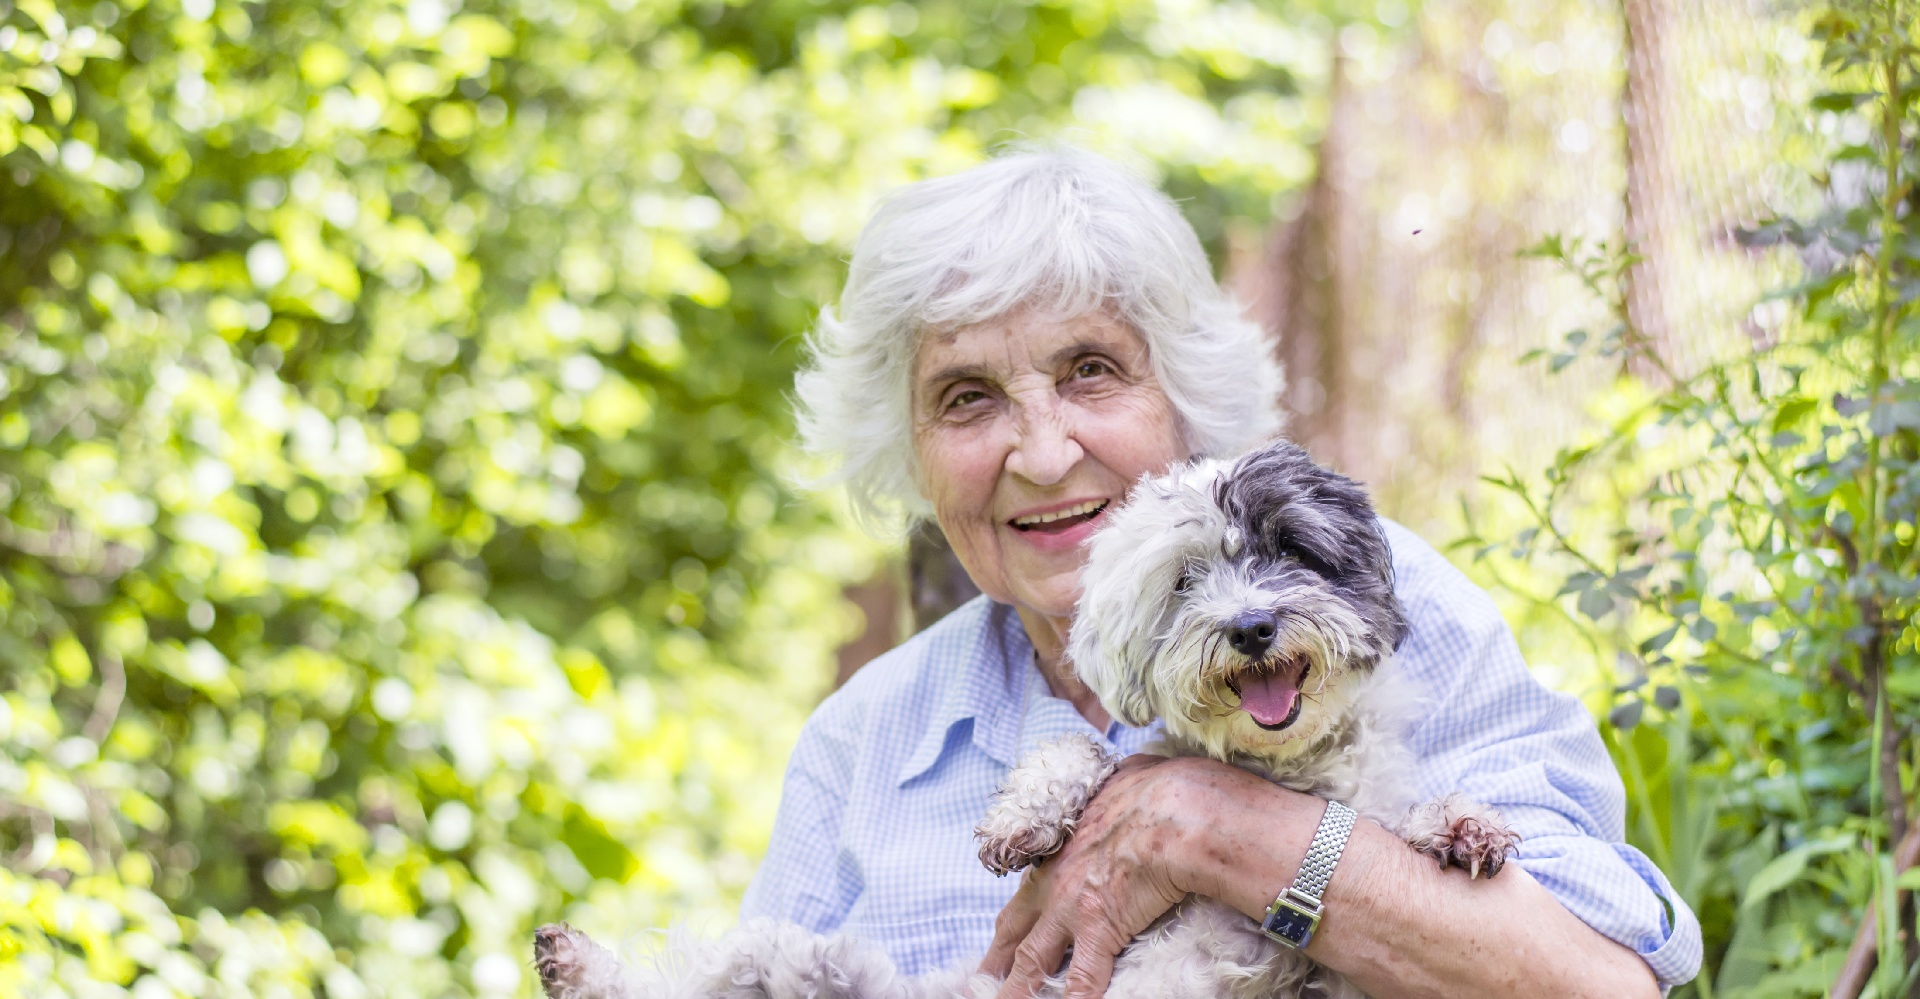 stock-photo-senior-smiling-woman-hugging-her-dog-in-the-mountain-195916712_HI-1